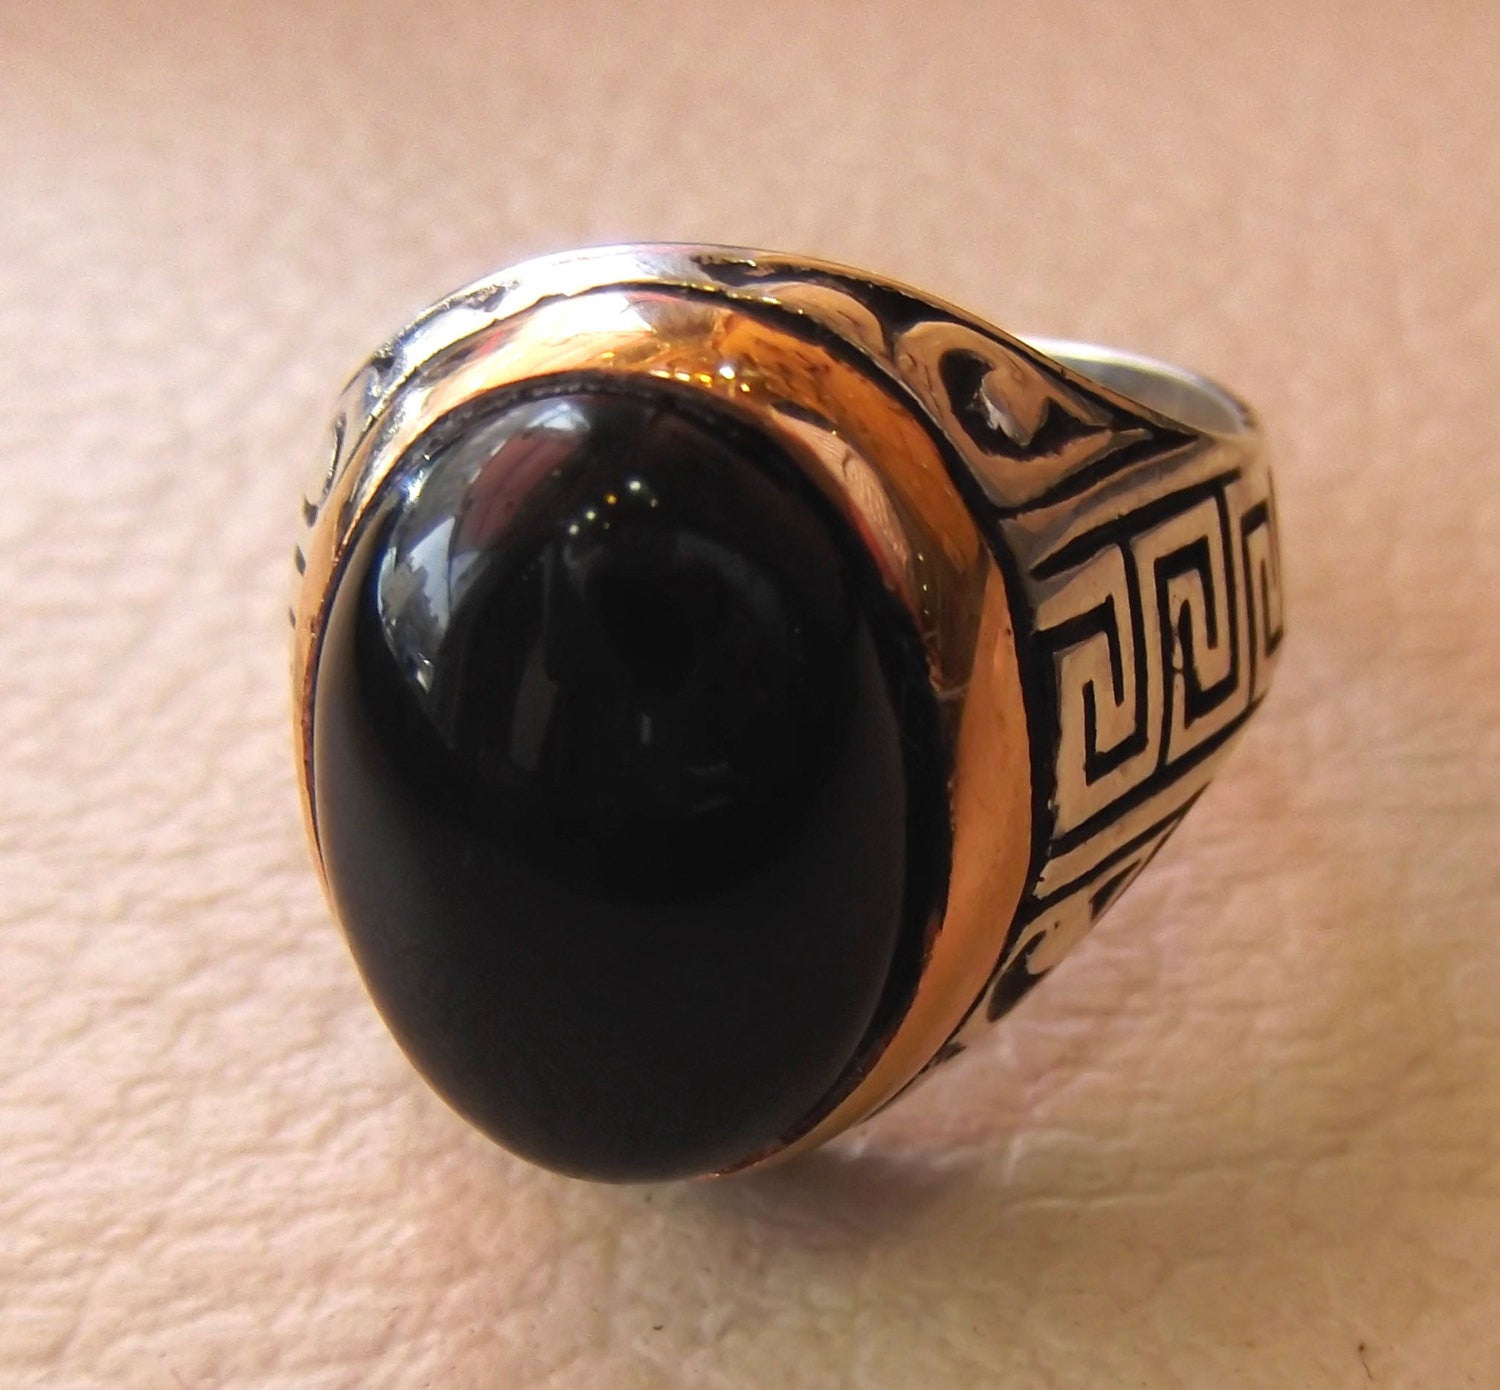 onyx agate black oval cabochon natural semi precious stone sterling silver 925 heavy ring bronze frame all sizes jewelry arabic persian